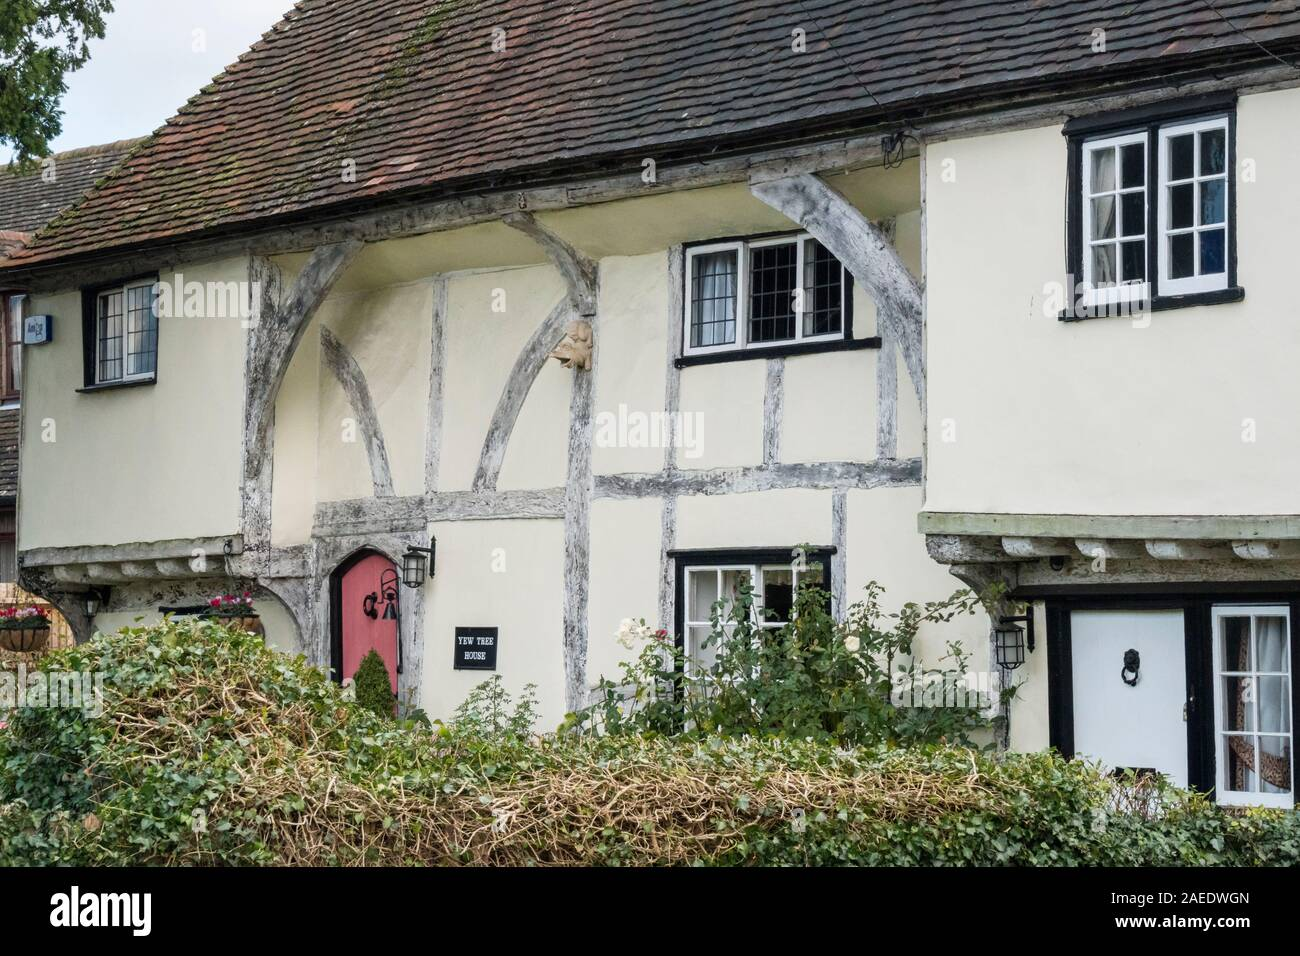 An ancient timber framed cottage in the village of Weavering, Kent, UK Stock Photo